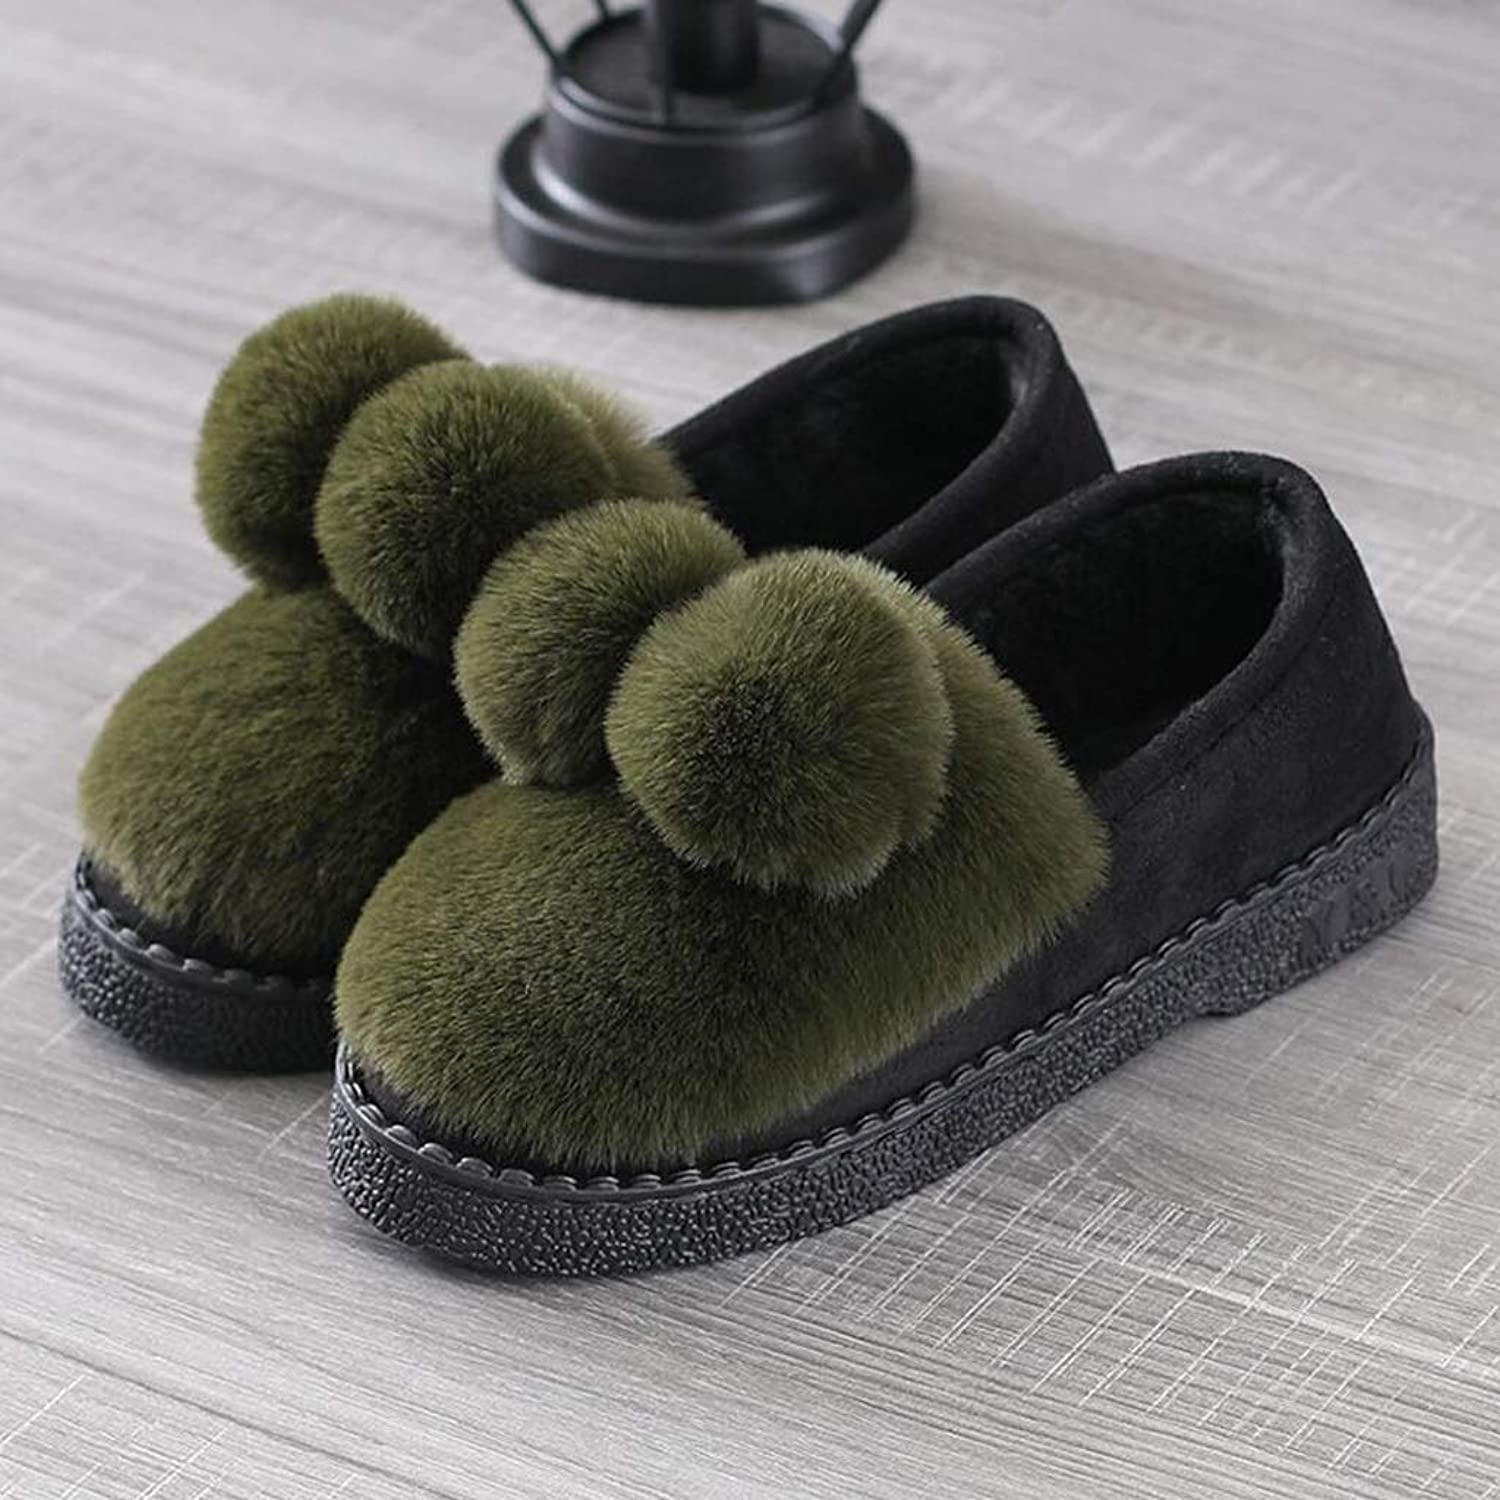 Women's Comfortable Plush Comfortable Home Slippers with Decorative Hair Ball Non-Slip Indoor shoes (color   D, Size   EUR 40-41)